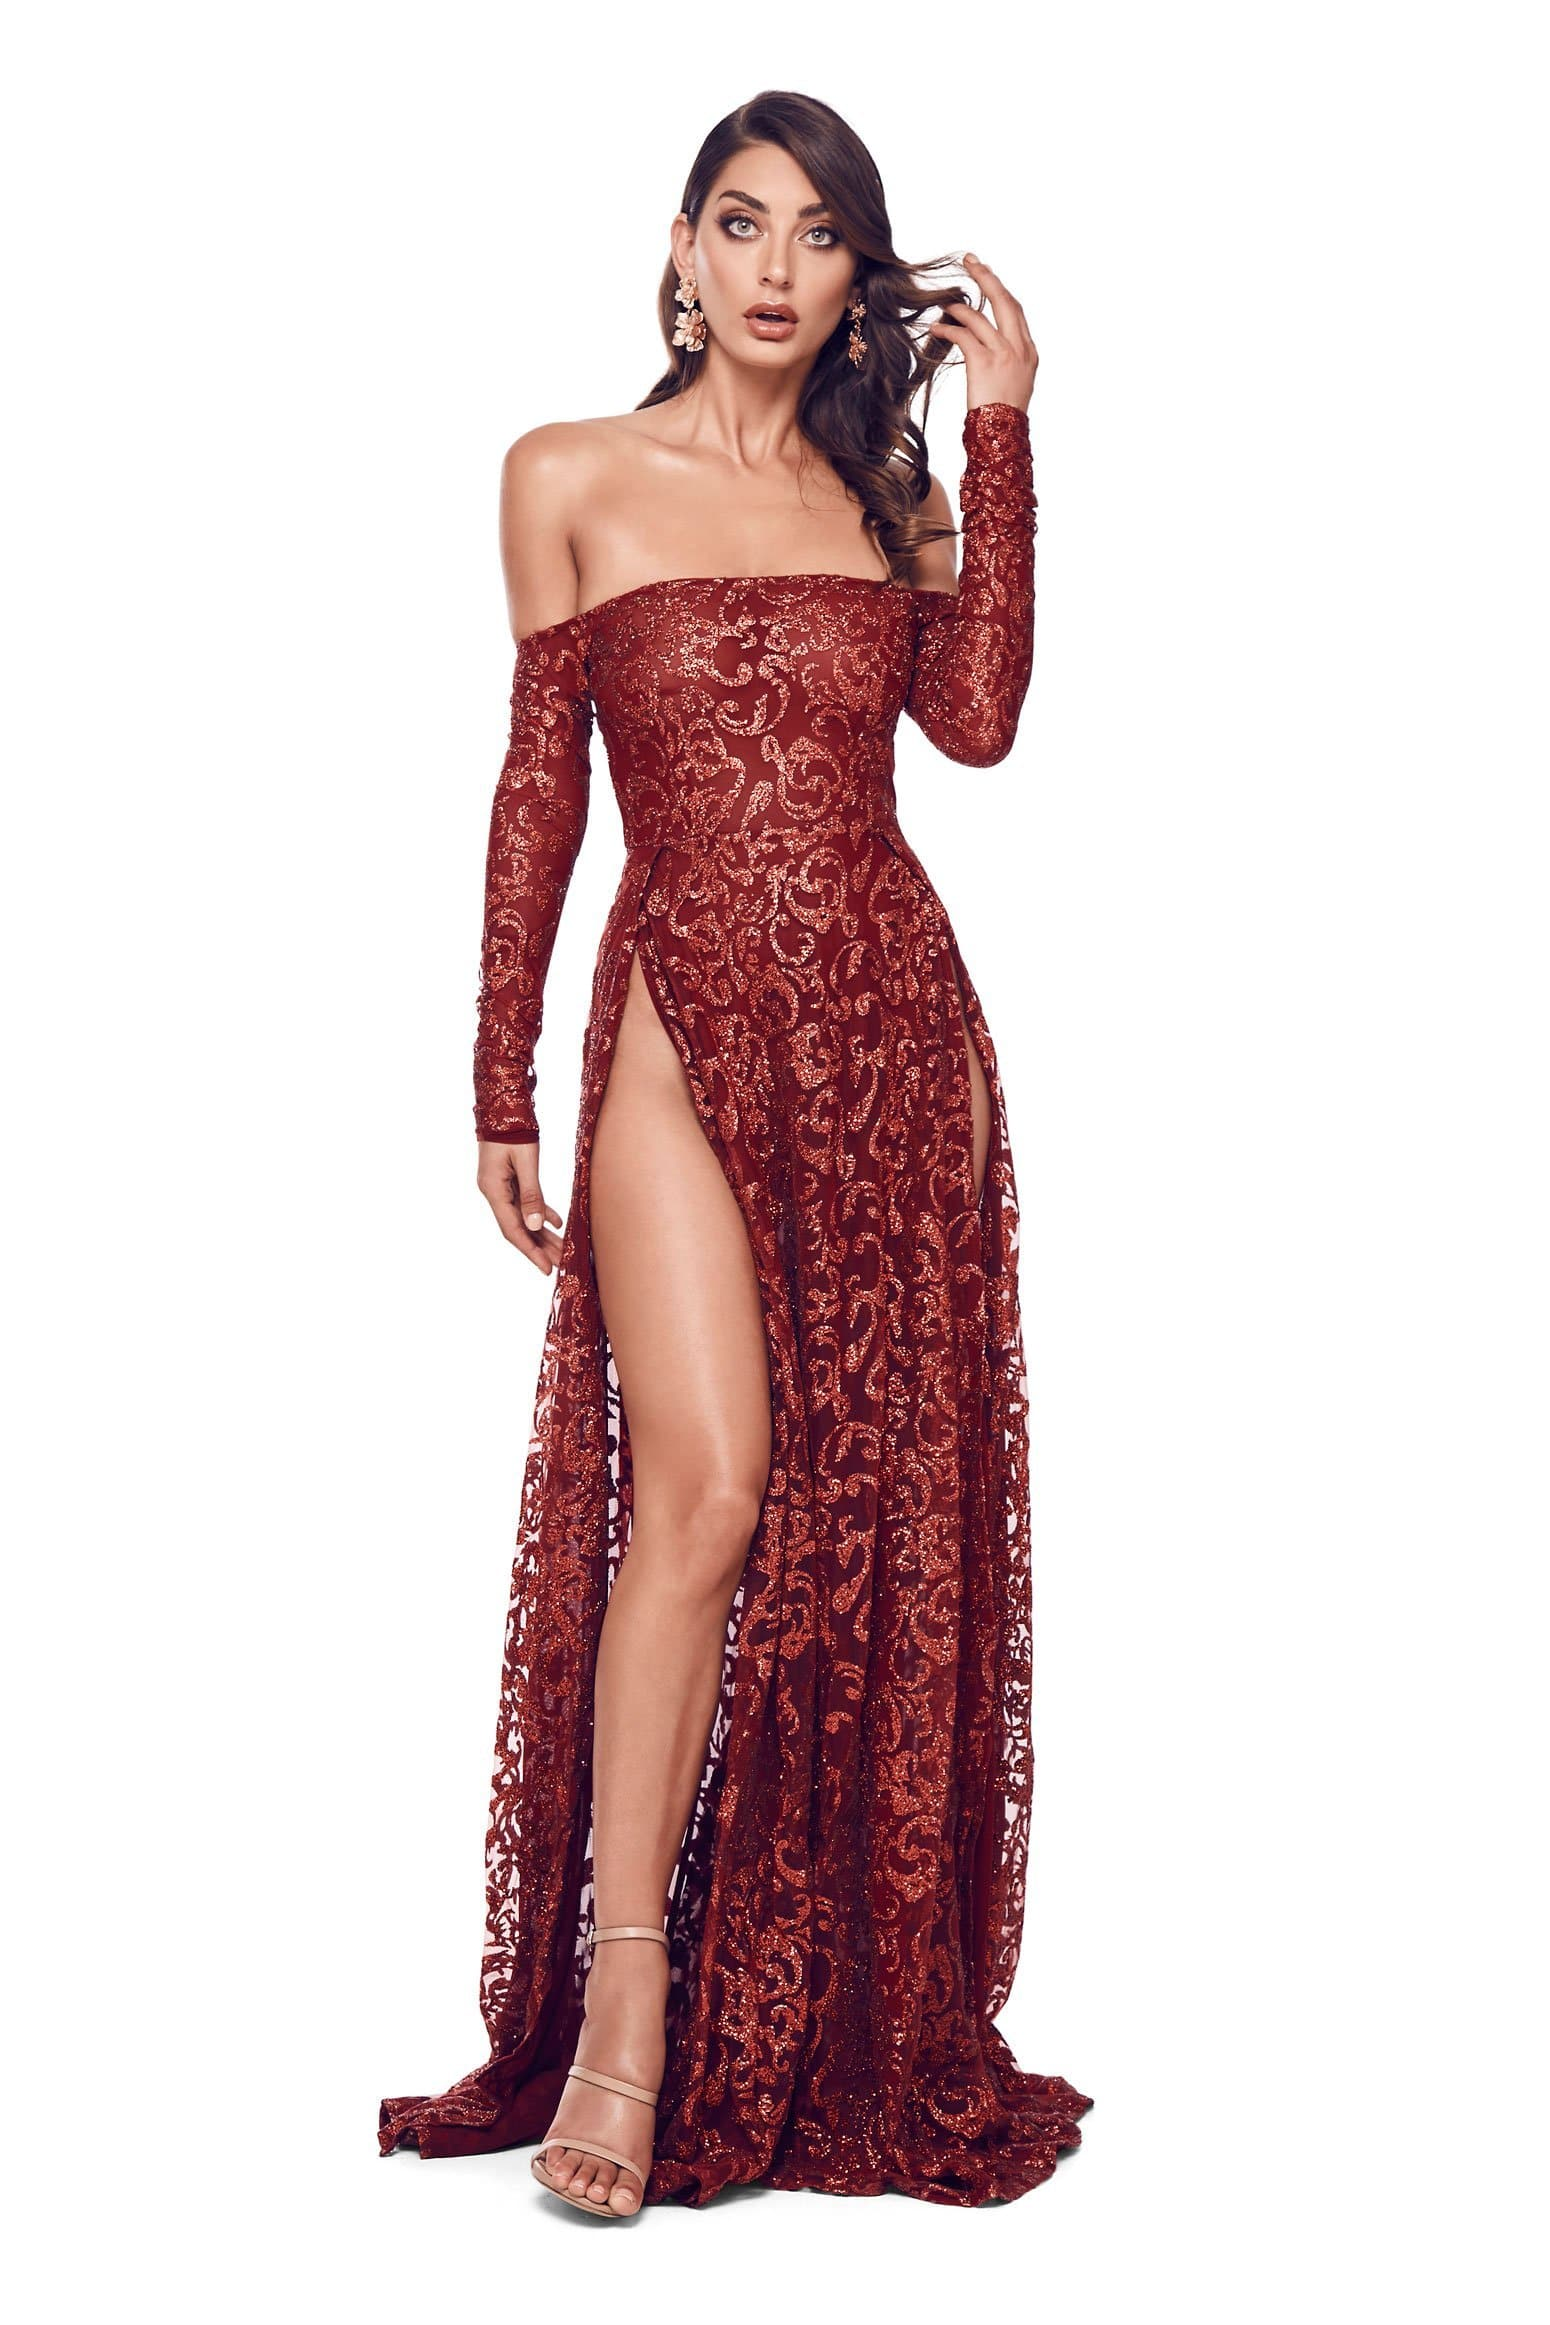 56ba0cc92c Flame - Wine Red Glitter Gown with Long Off-Shoulder Sleeves